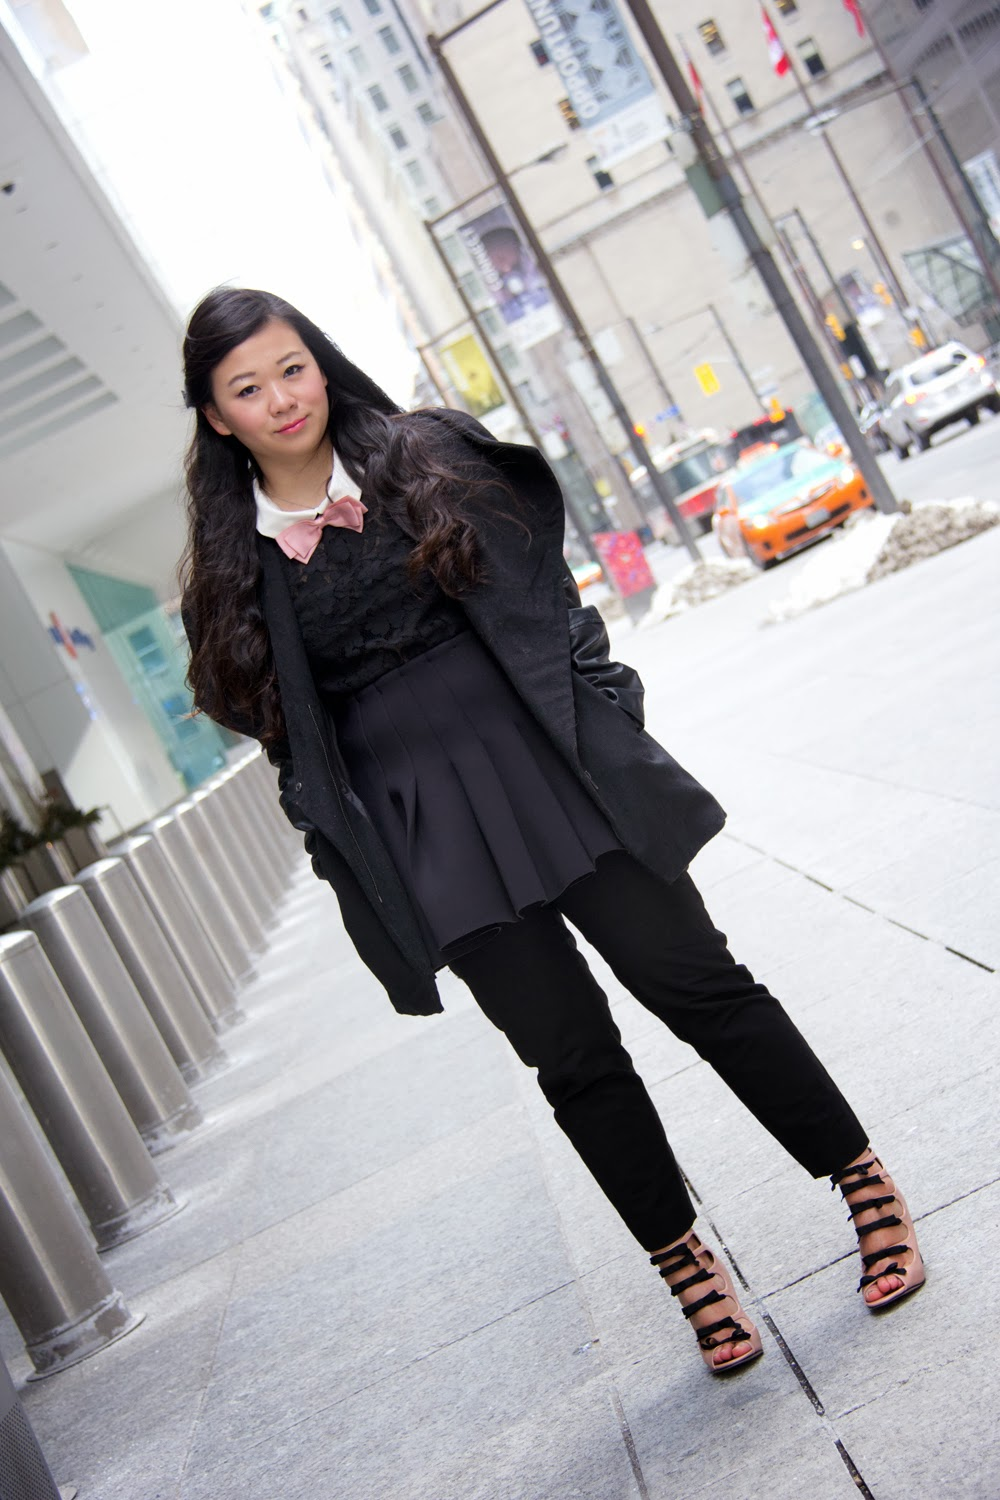 Black-Faux-Leather-Sleeve-Coat, Skirt-on-pants, Black-on-black, Street-Style